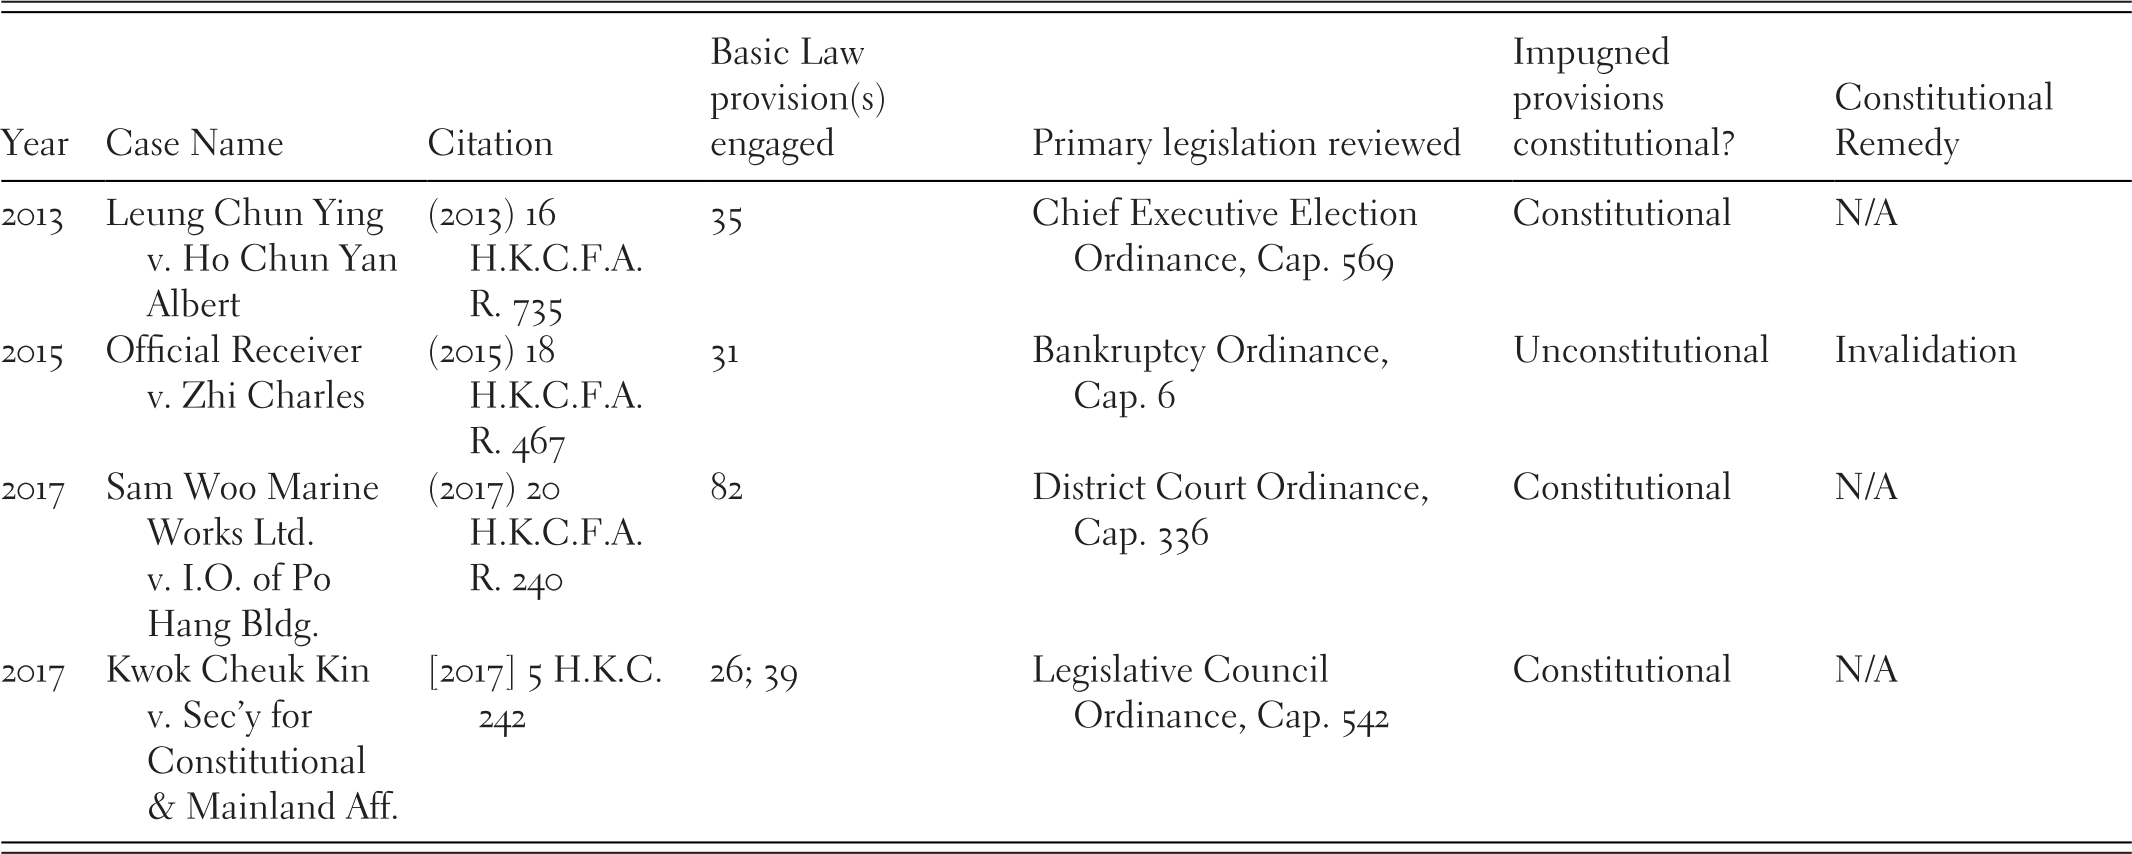 Comparative Constitutional Review in the Chinese Special